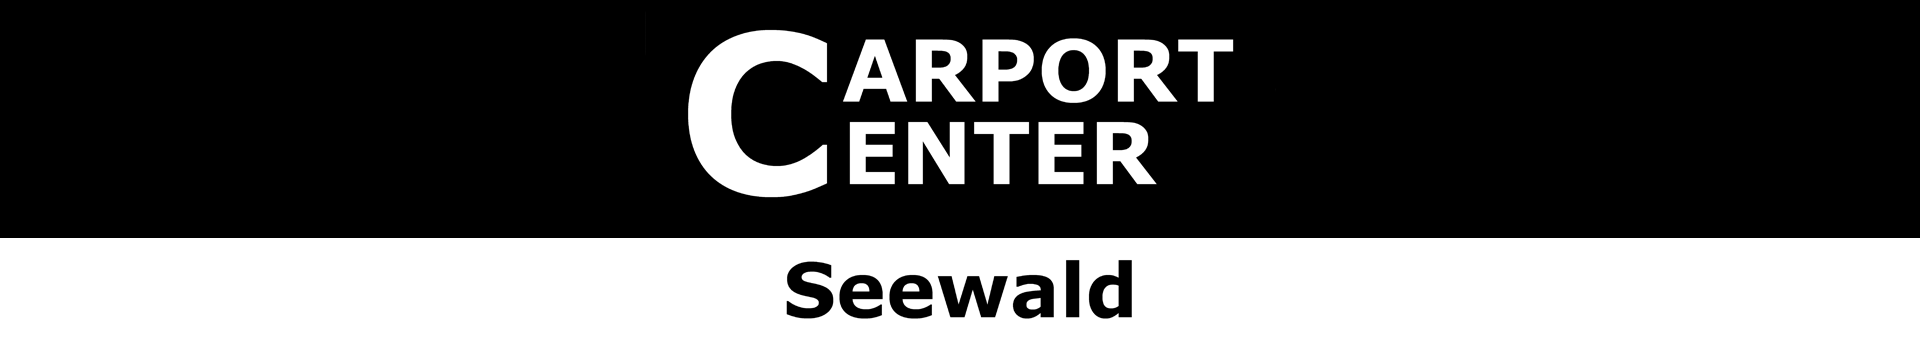 Carportcenter Seewald